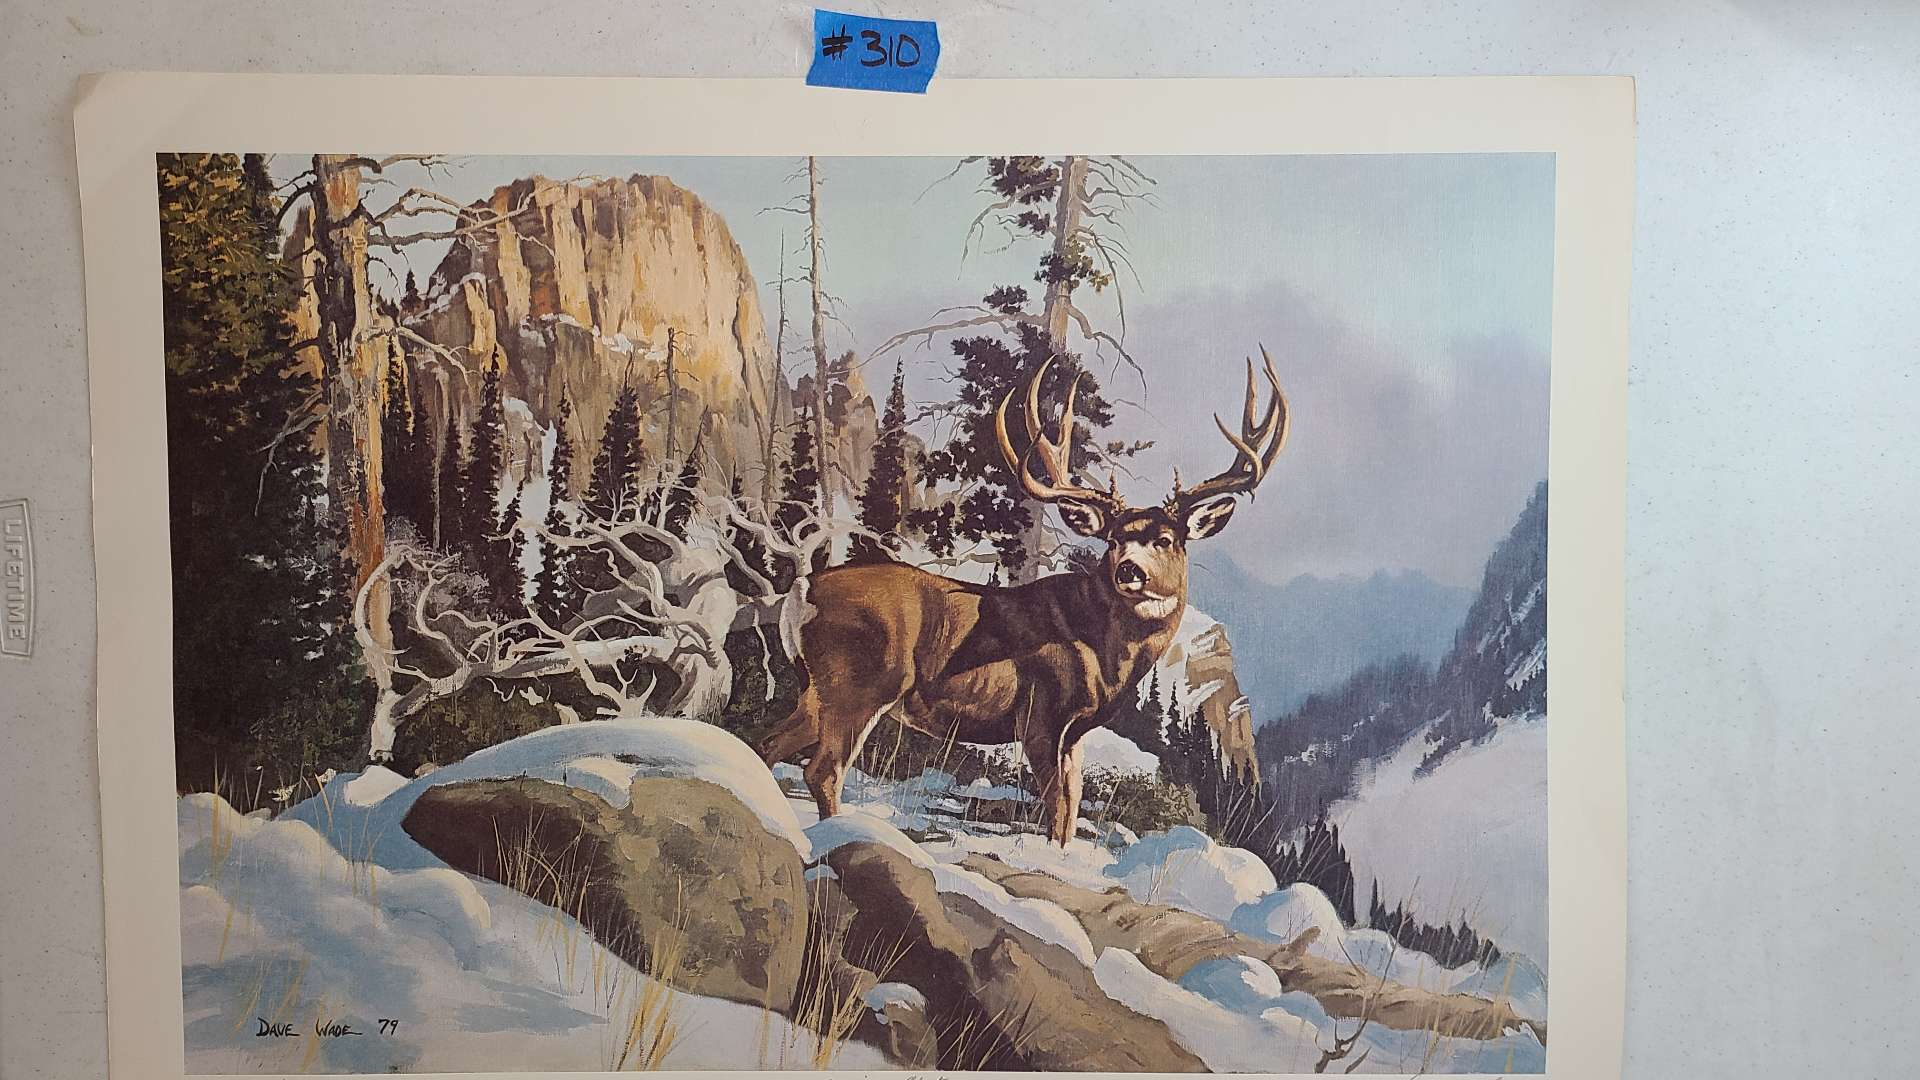 Lot # 310 Lithograph Sunrise Alert By Dave Wade Signed and Numbered